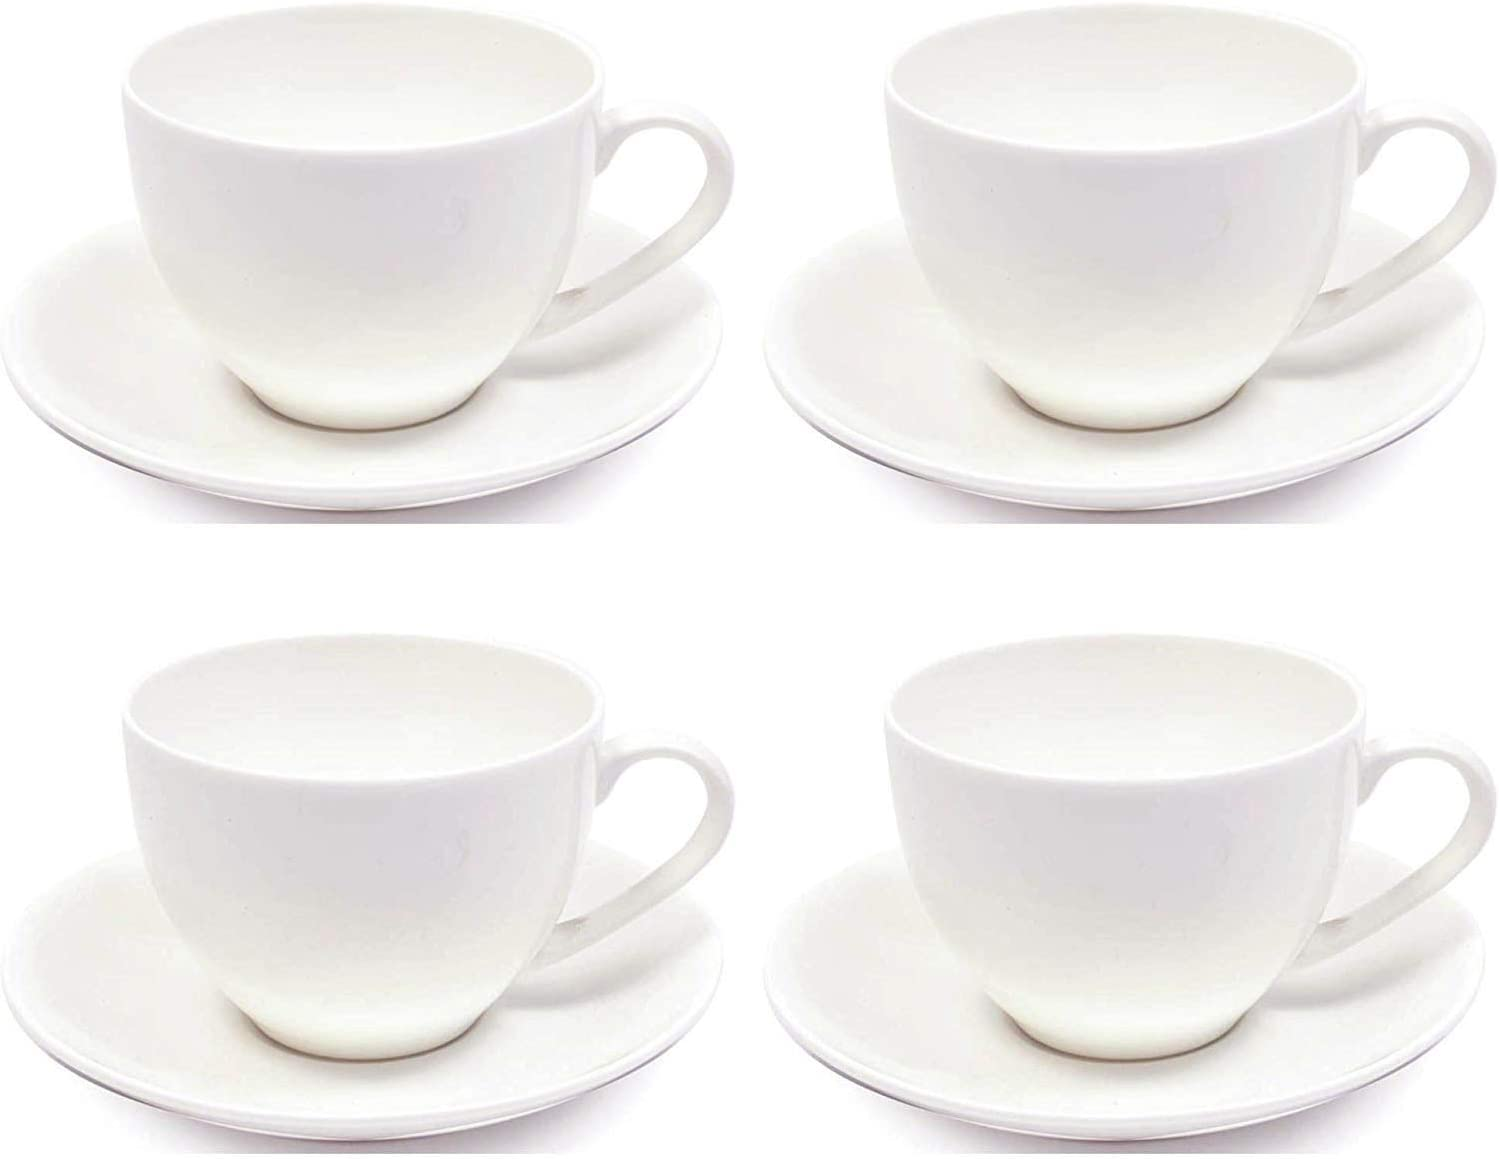 Maxwell & Williams Cashmere Tea Cup and Saucer Set, Fine